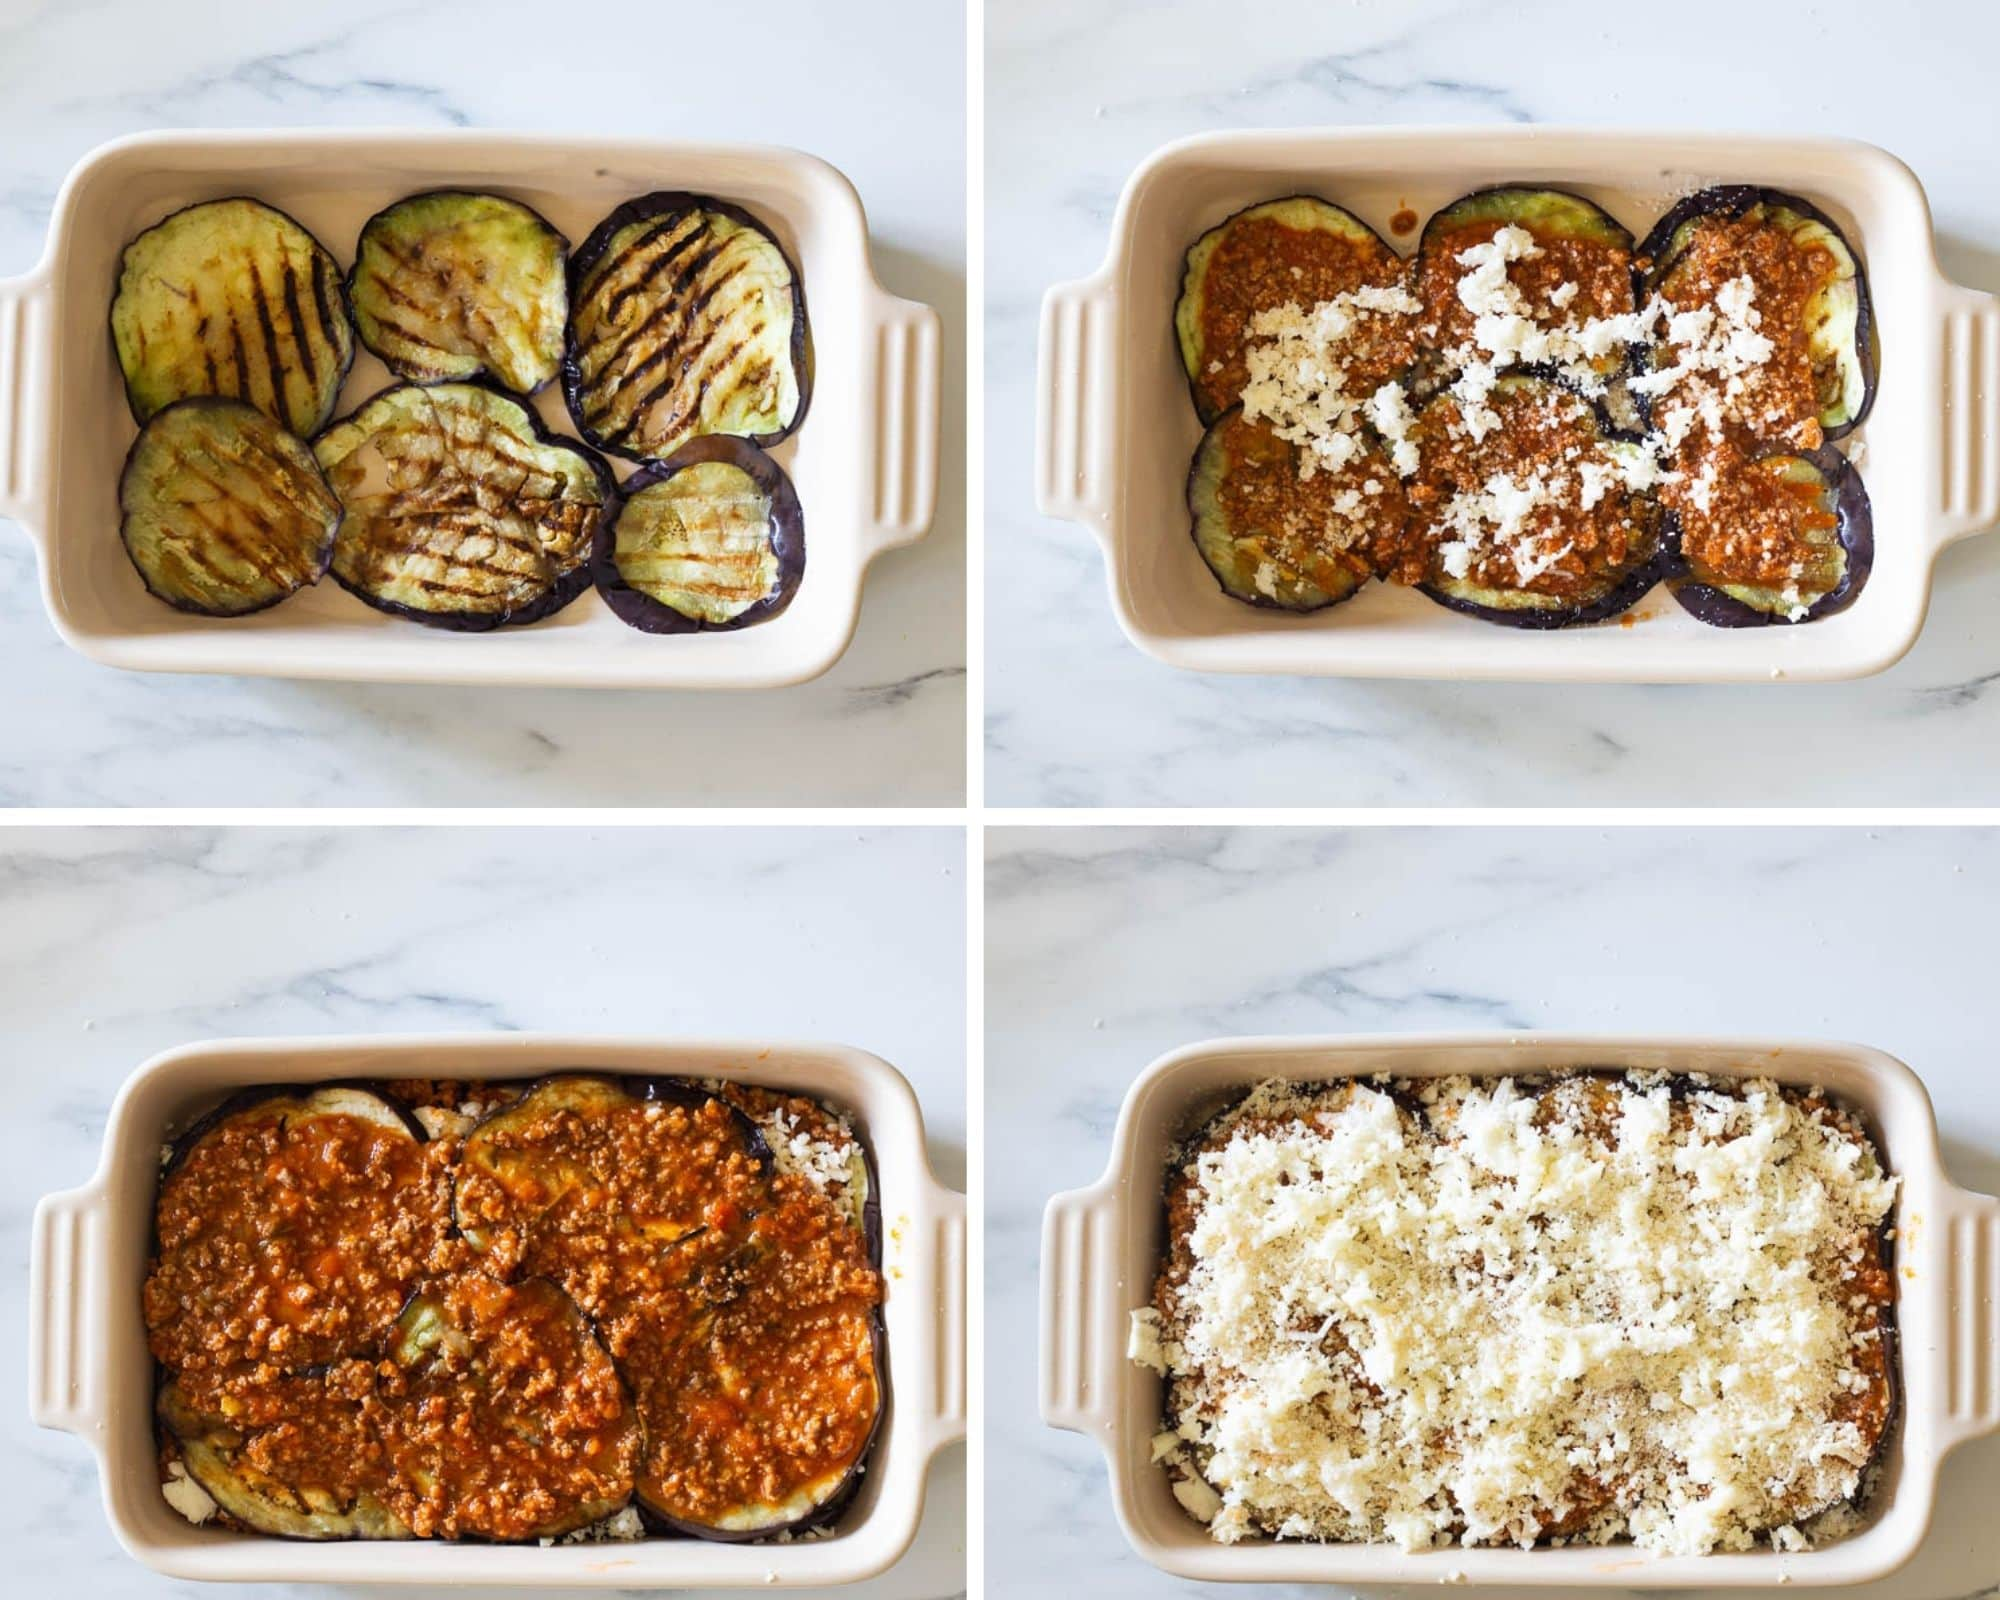 Collage showing how to assemble the eggplant lasagna.